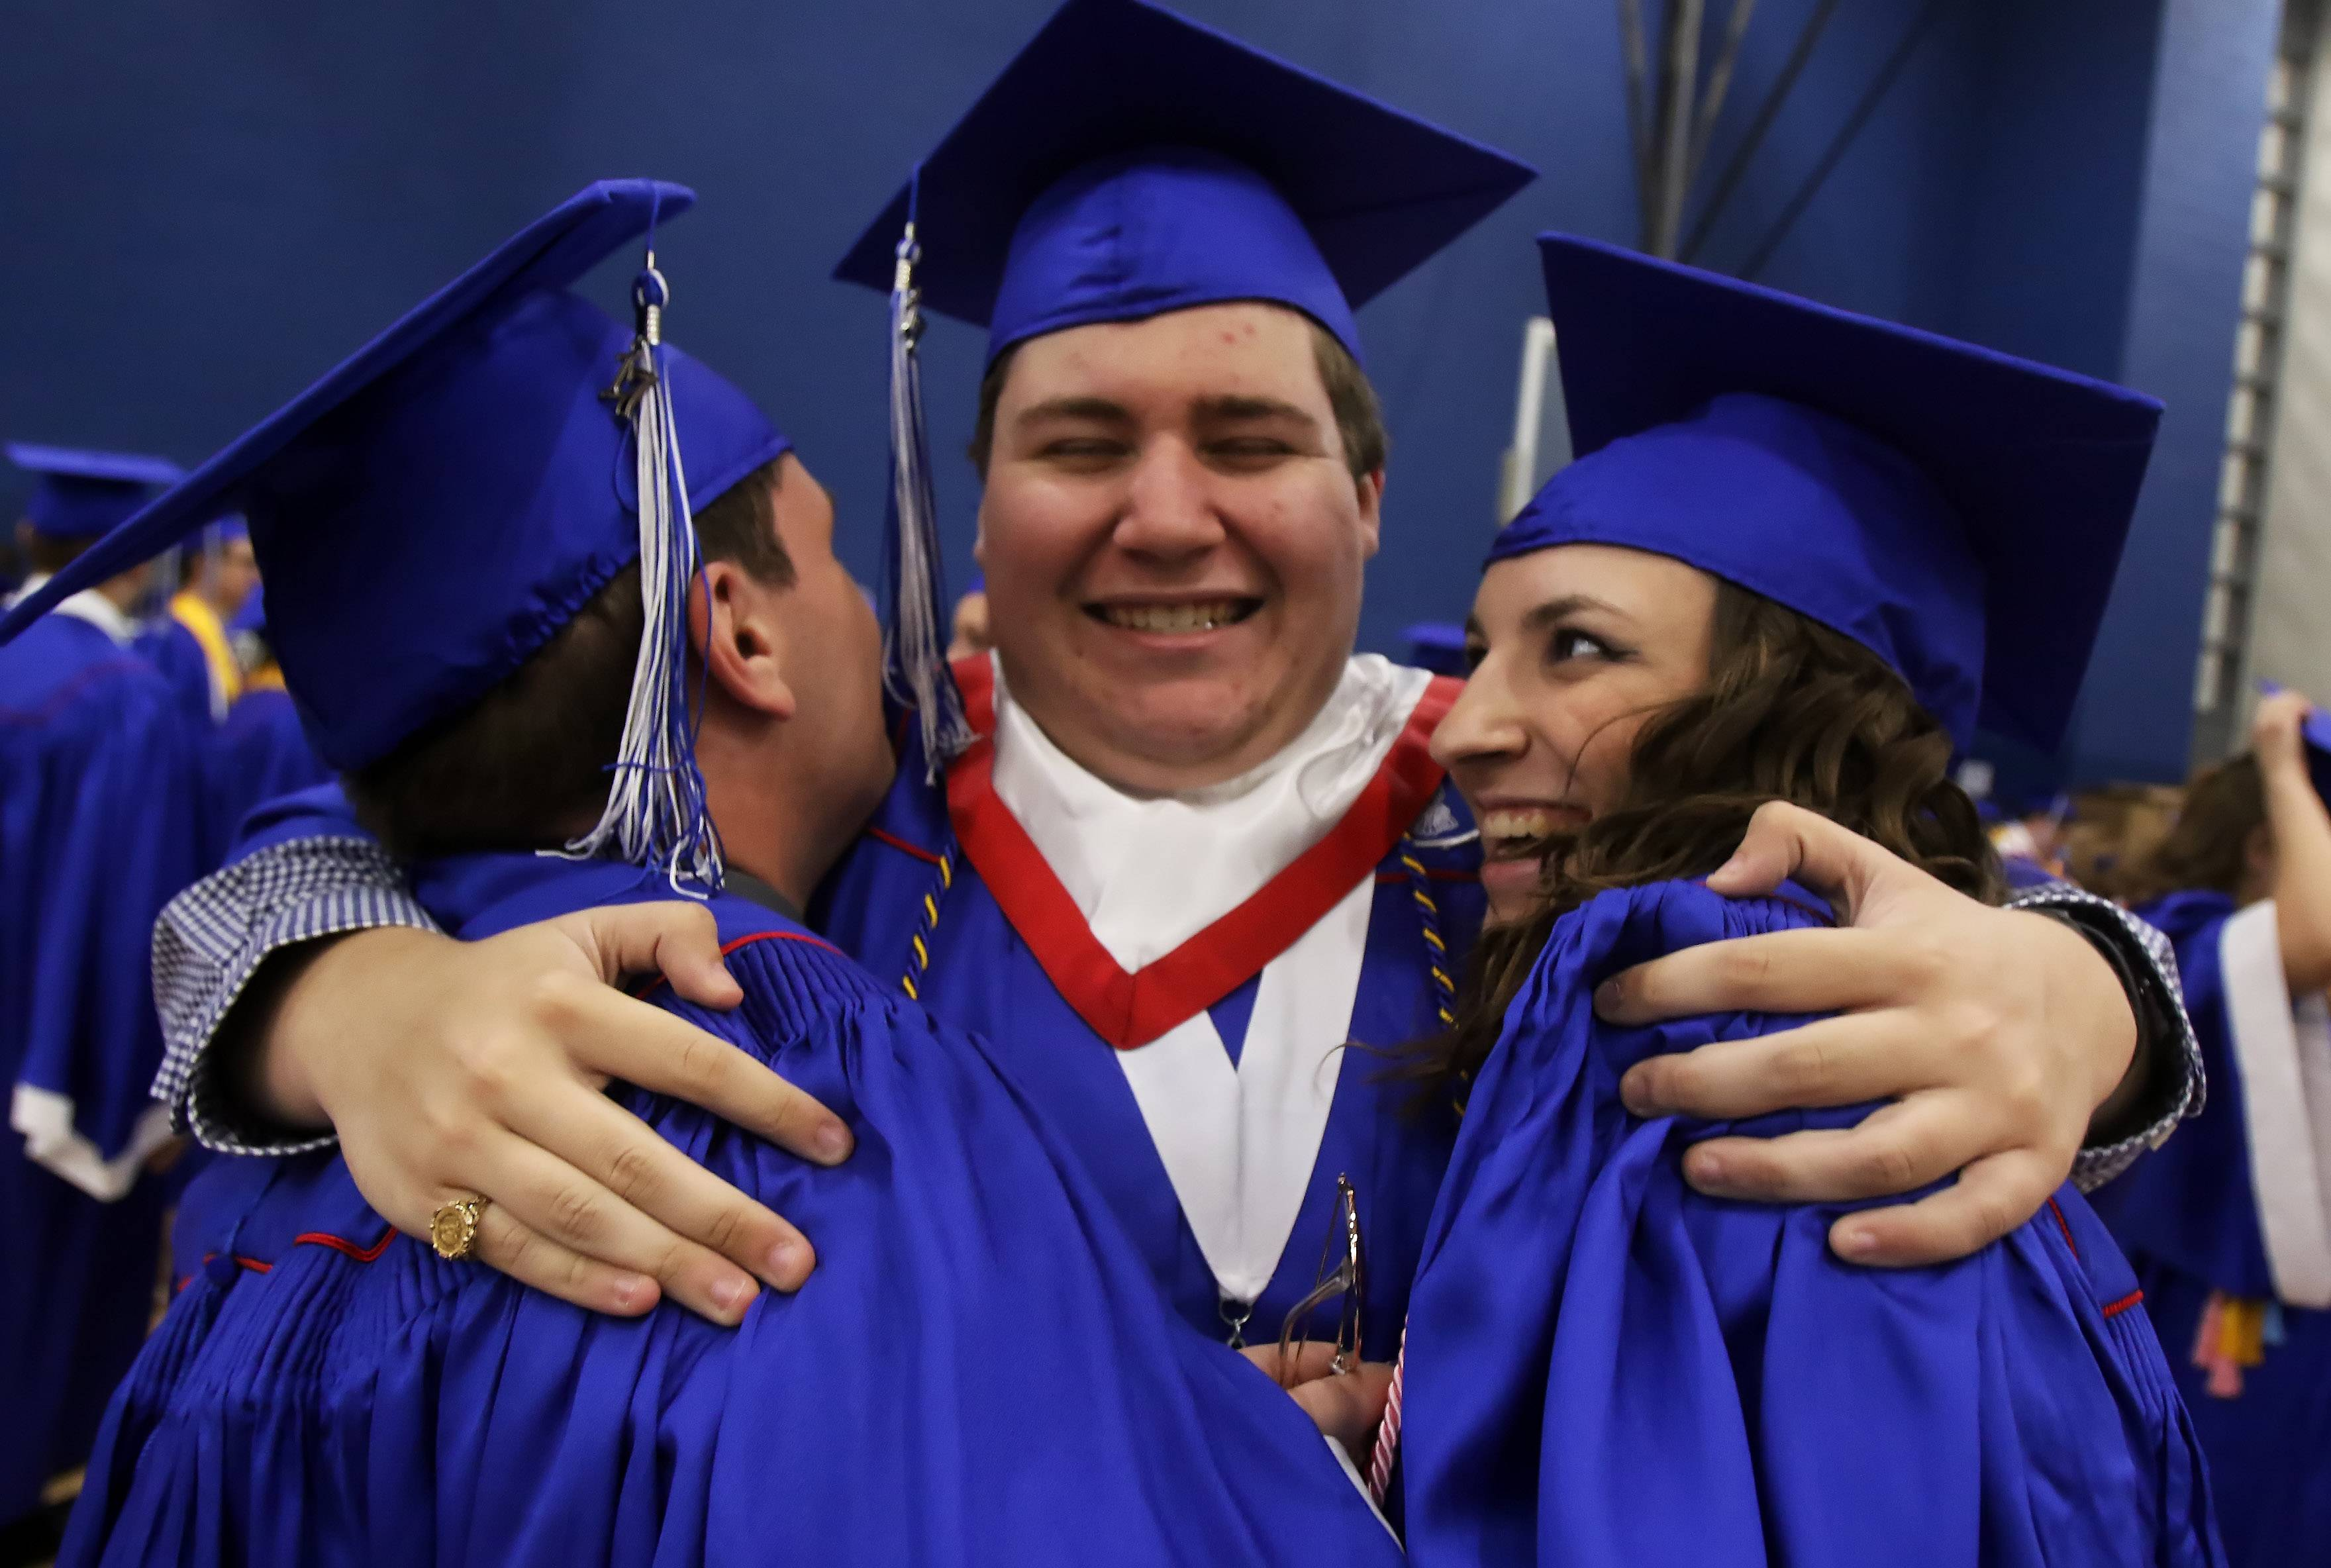 Ethan Carlson, Tyler Brumm and Joanne Gorski hug before the Lakes Community High School graduation Sunday in Lake Villa. There were 370 seniors who received their diploma at the commencement exercises.